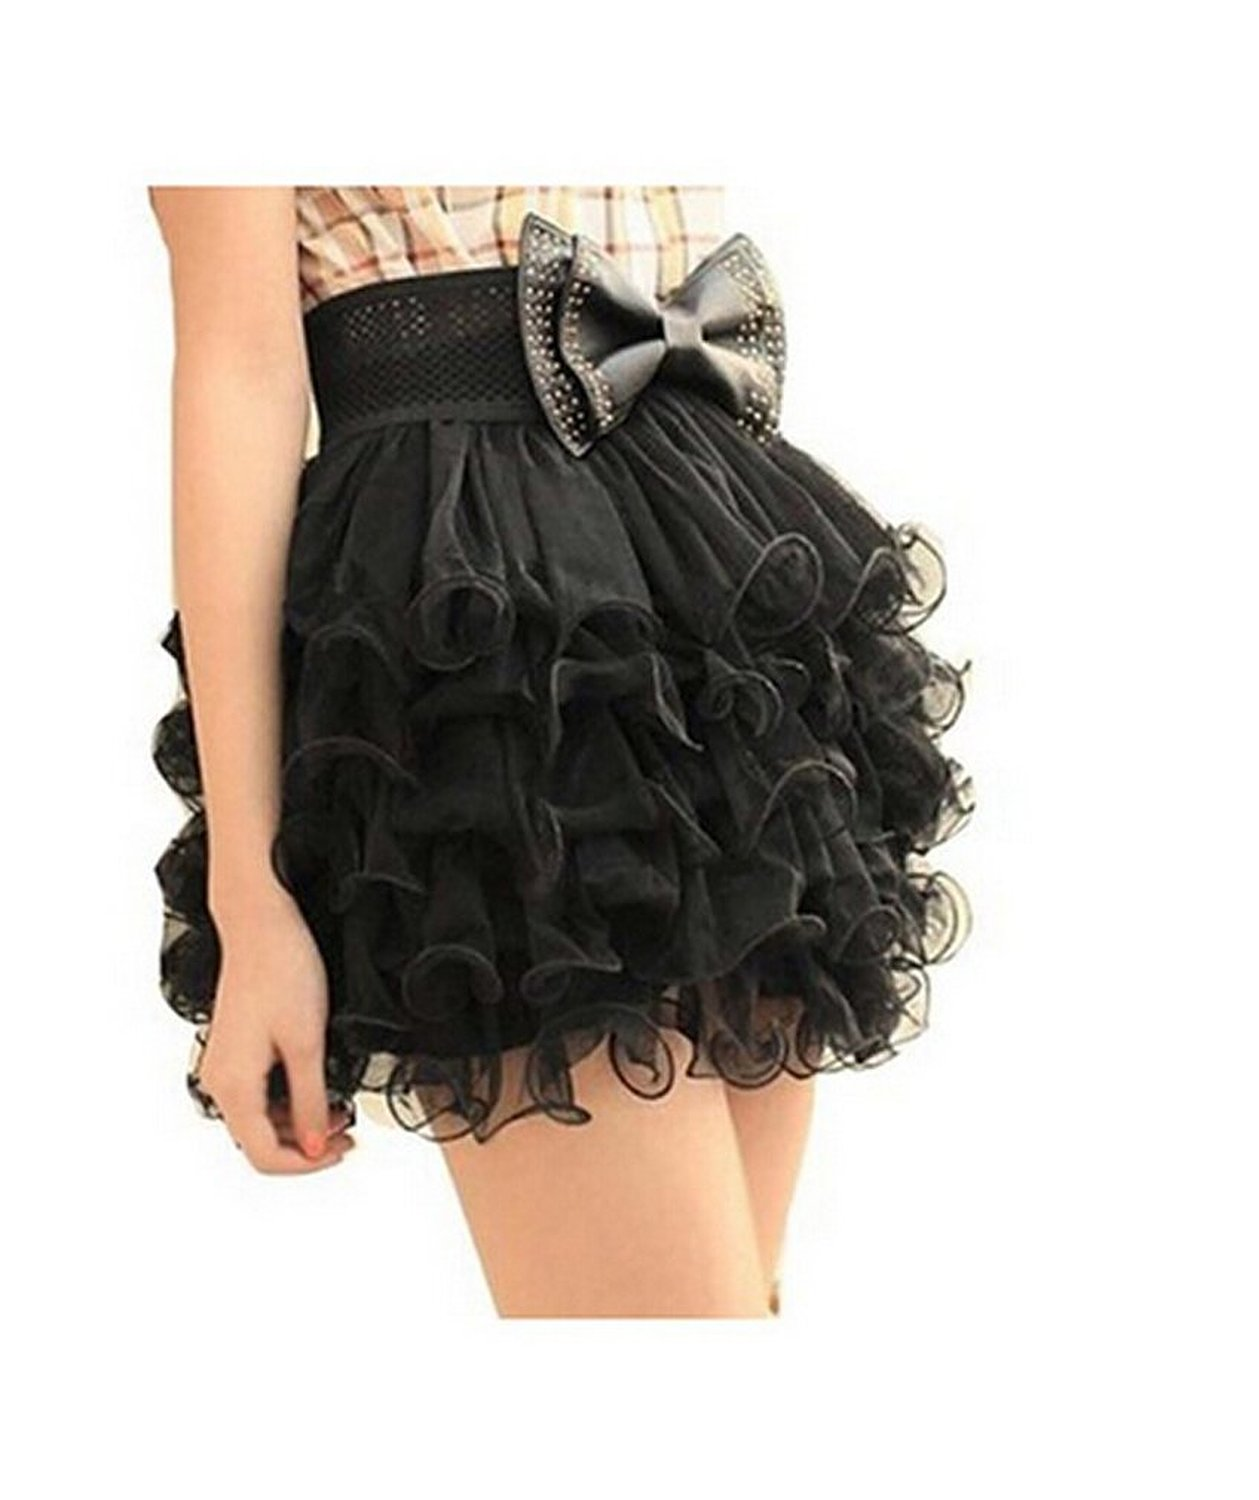 Amazon.com: outop girls black 5 layer full tutu tulle tier mini dress cake skirt: clothing